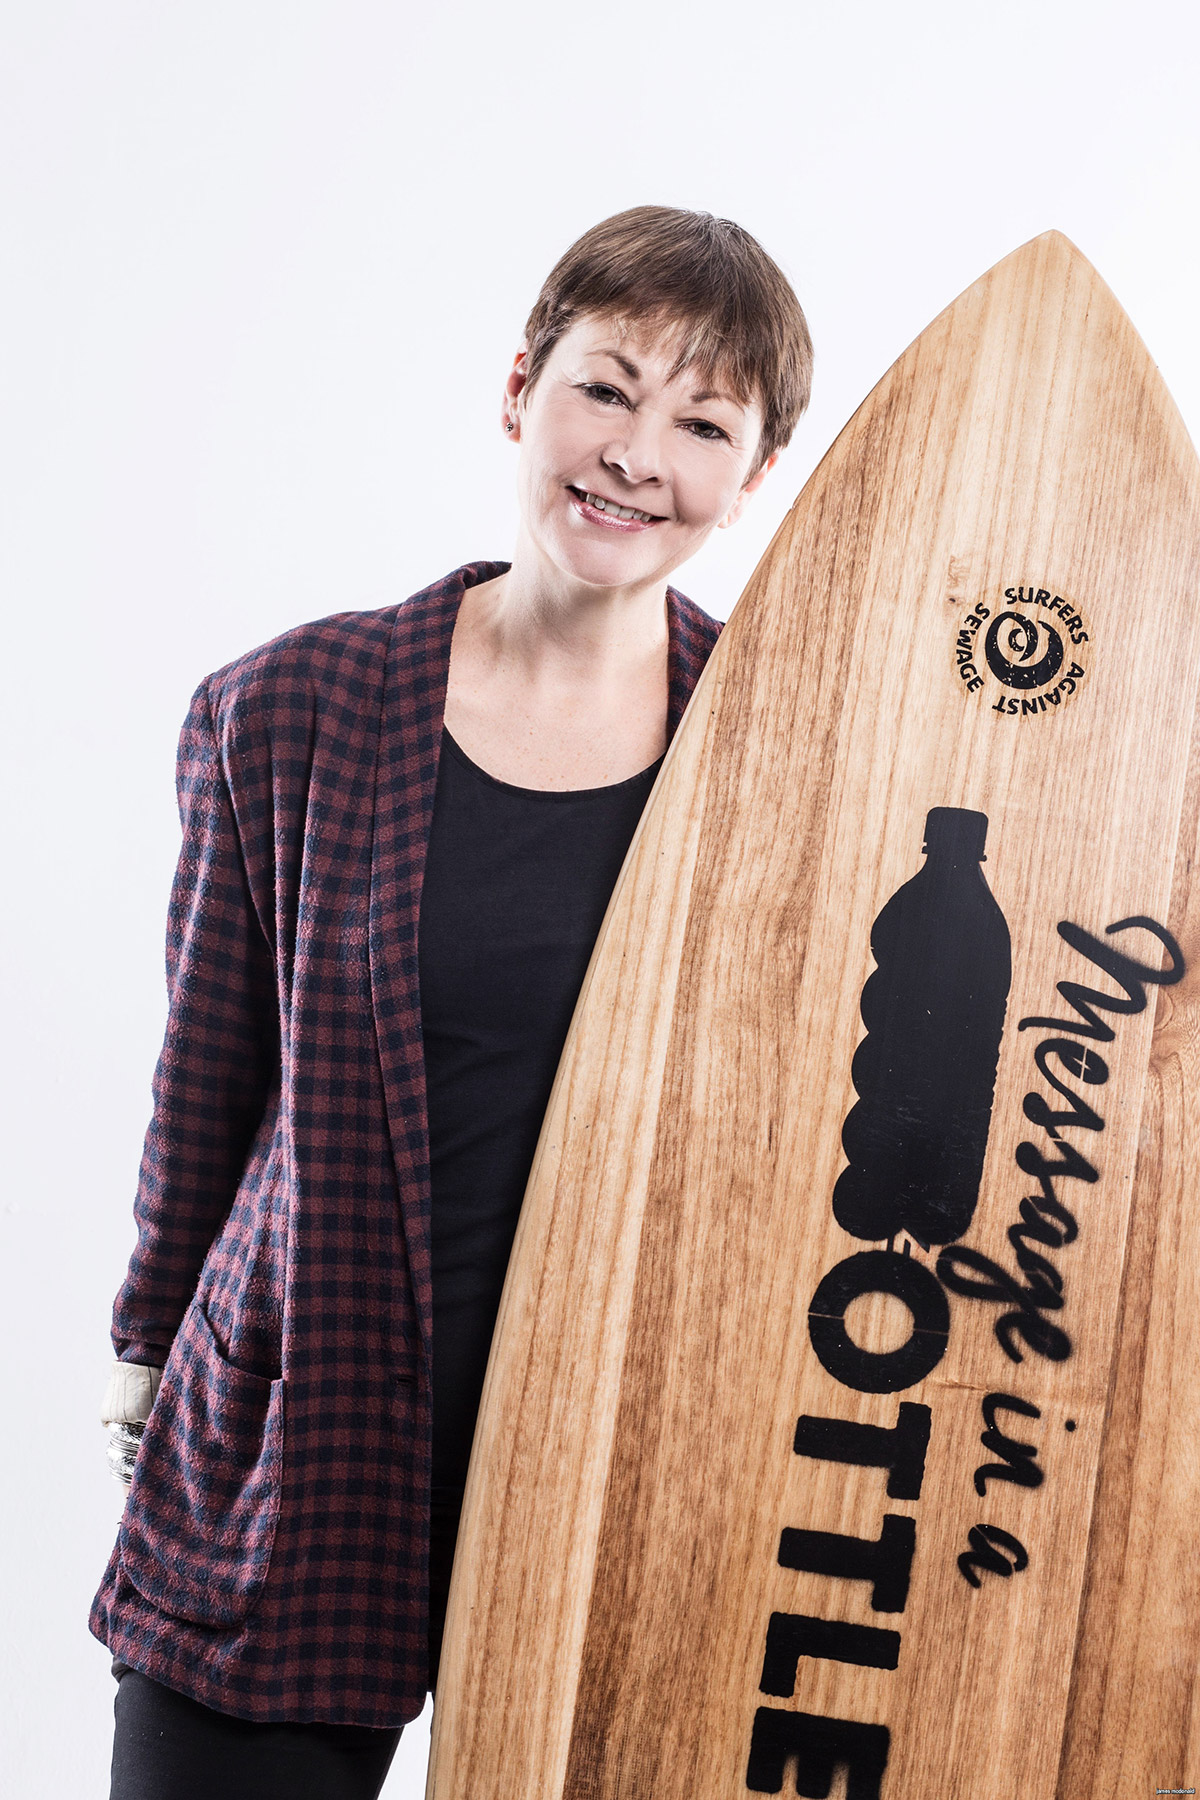 Caroline Lucas of the Green Party